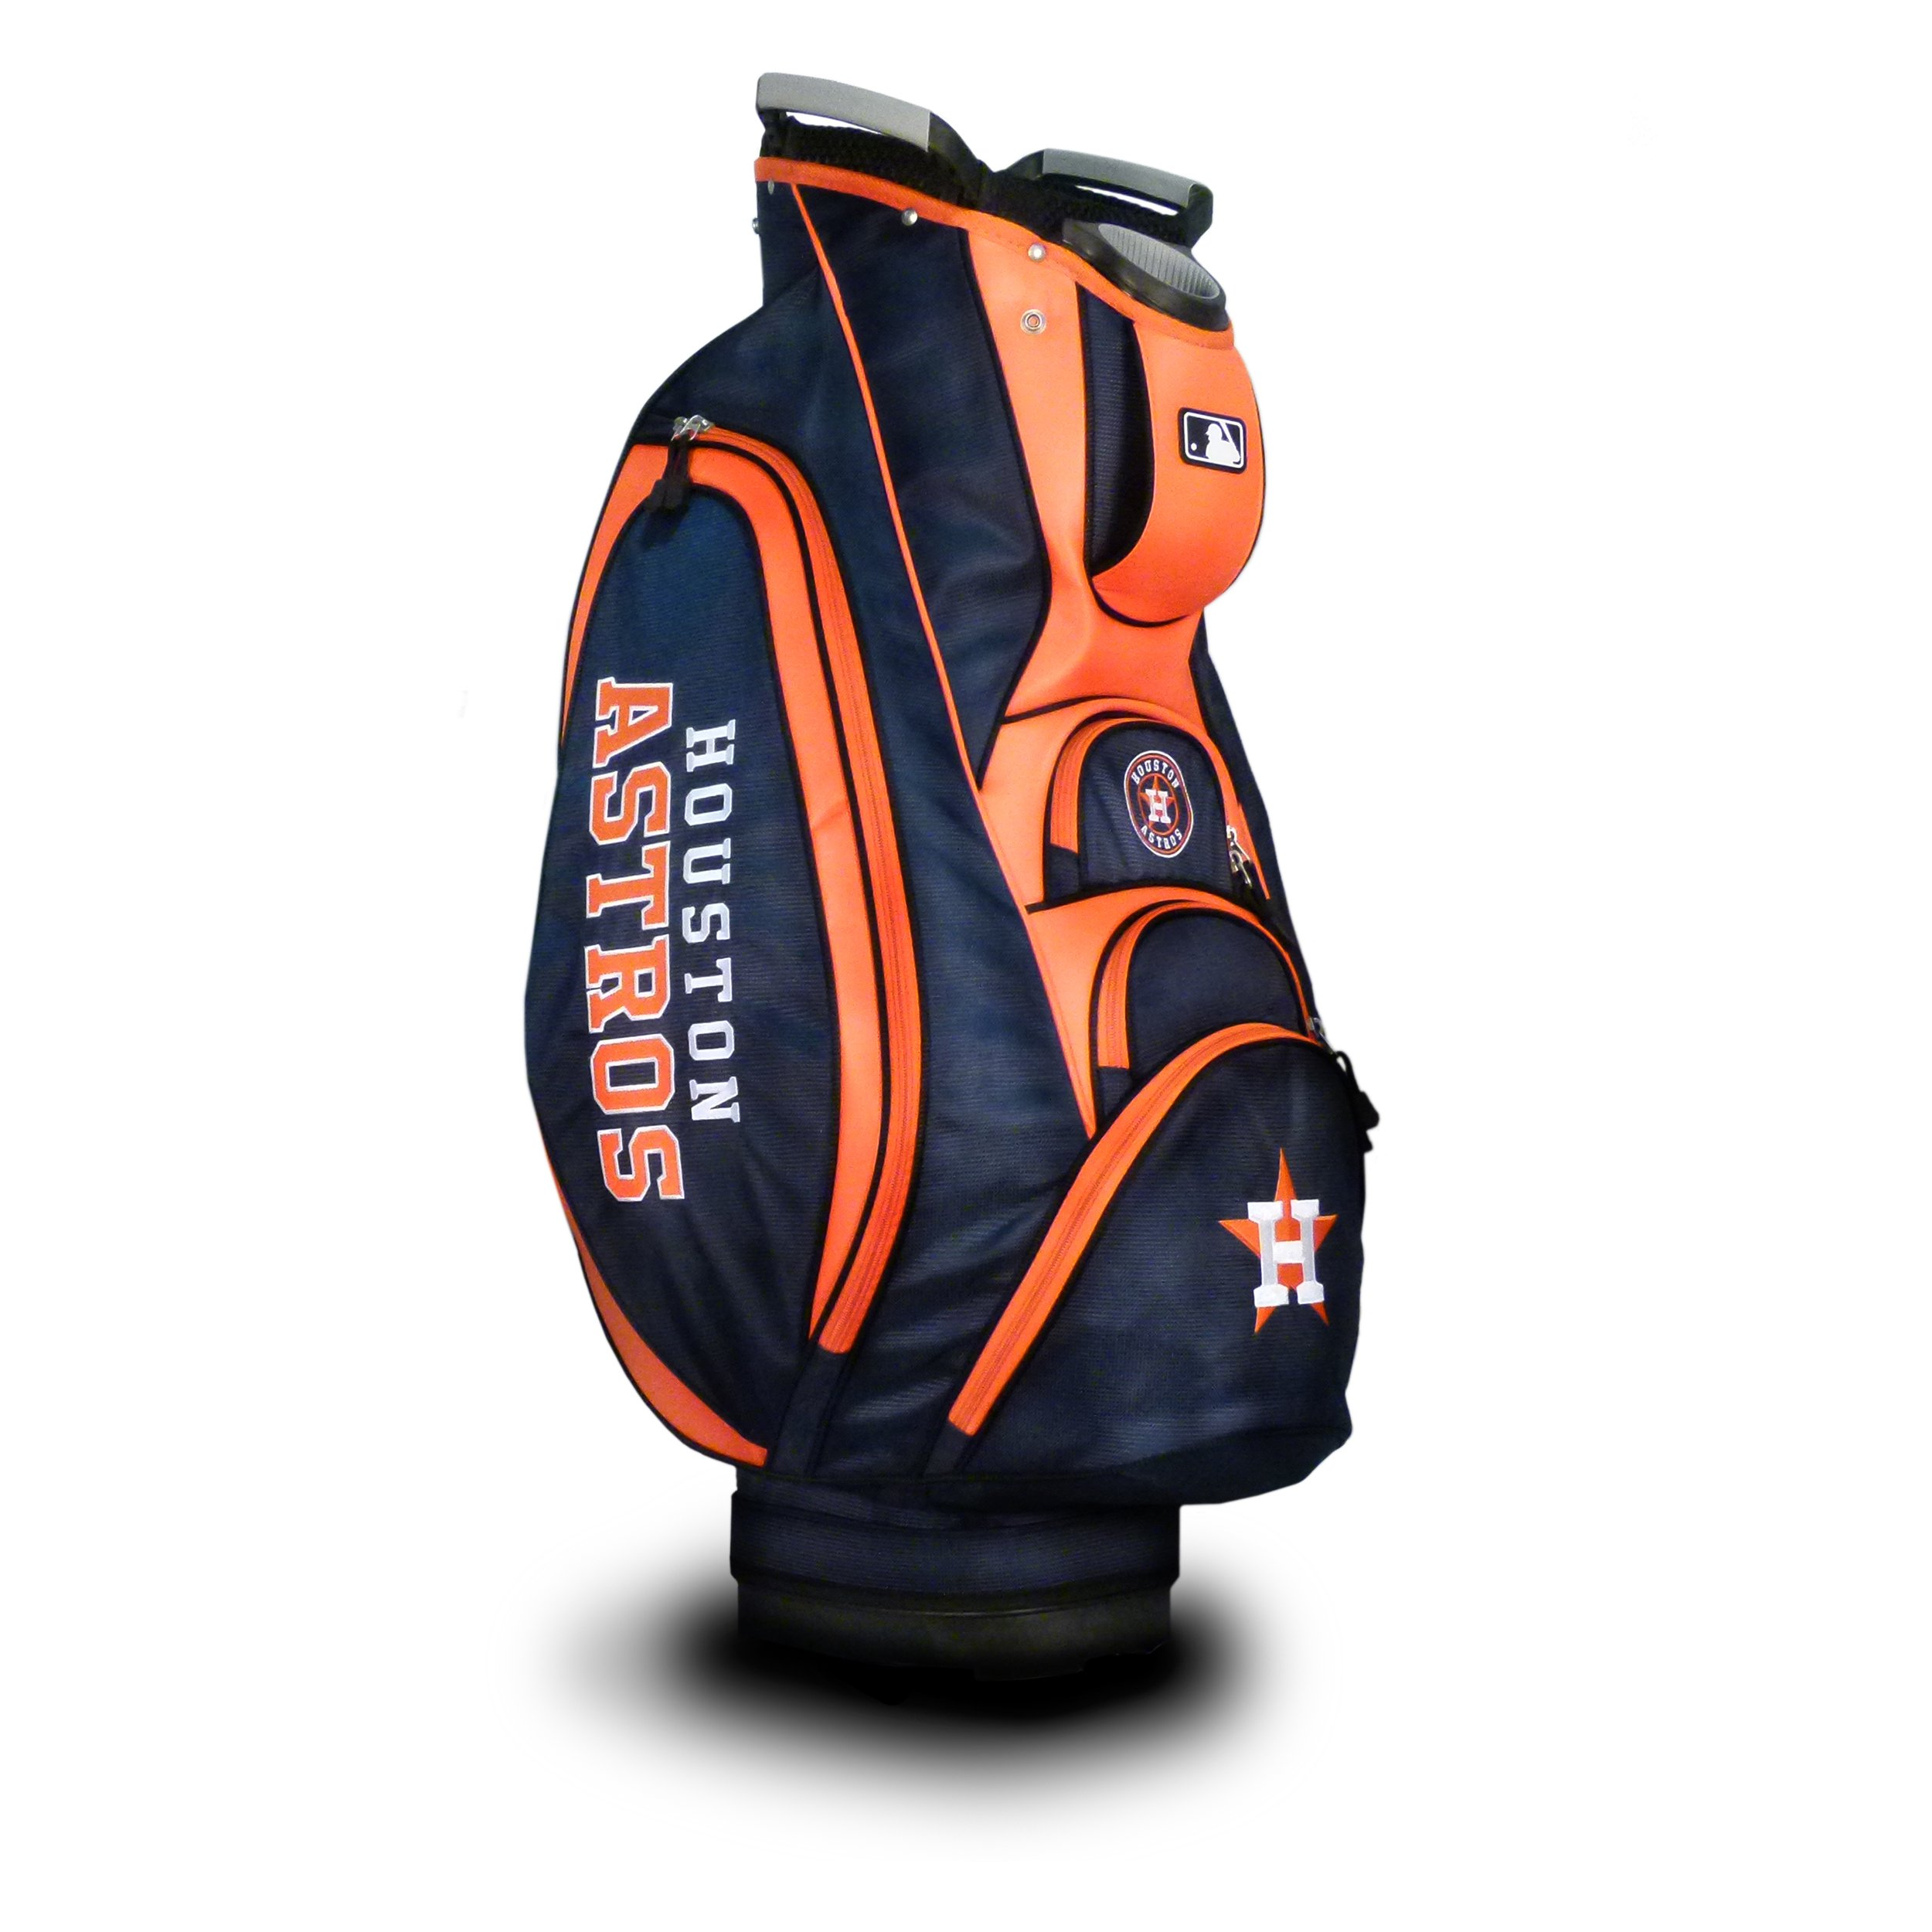 Team Golf MLB Houston Astros Victory Golf Cart Bag, 10-way Top with Integrated Dual Handle & External Putter Well, Cooler Pocket, Padded Strap, Umbrella Holder & Removable Rain Hood